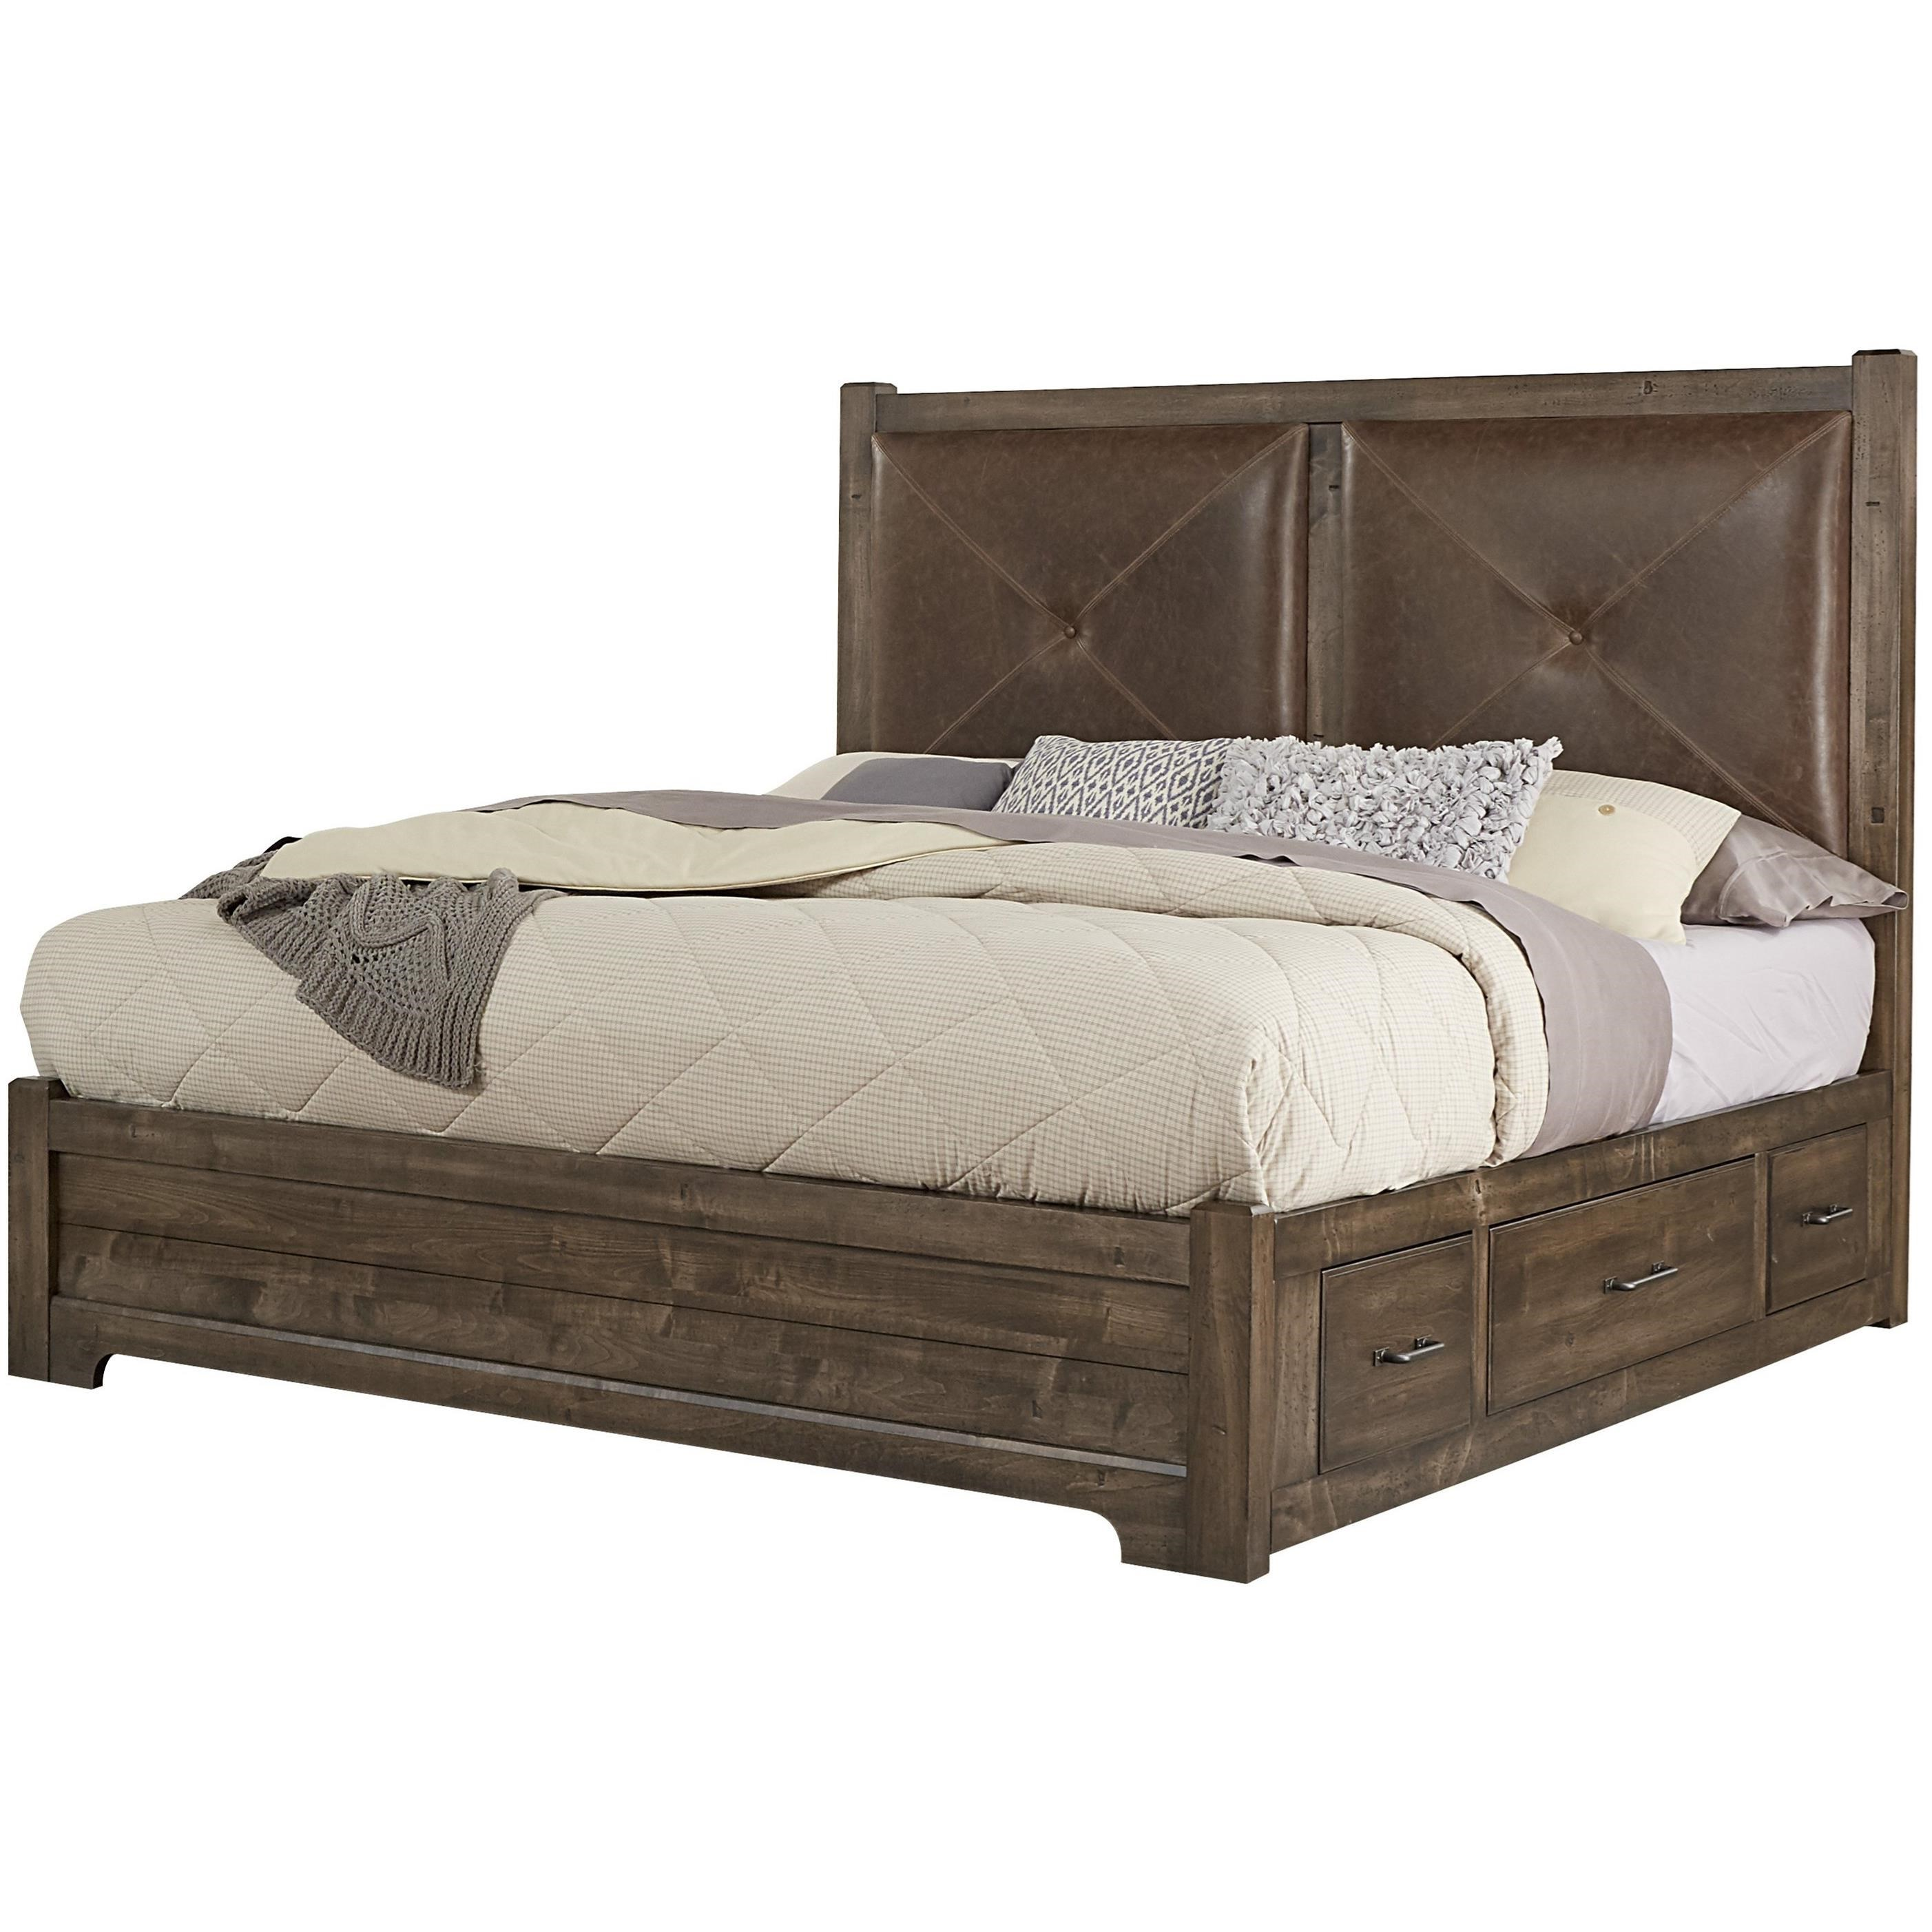 Post Cool Rustic Solid Wood Queen Leather Headboard Bed With Double Side Storage